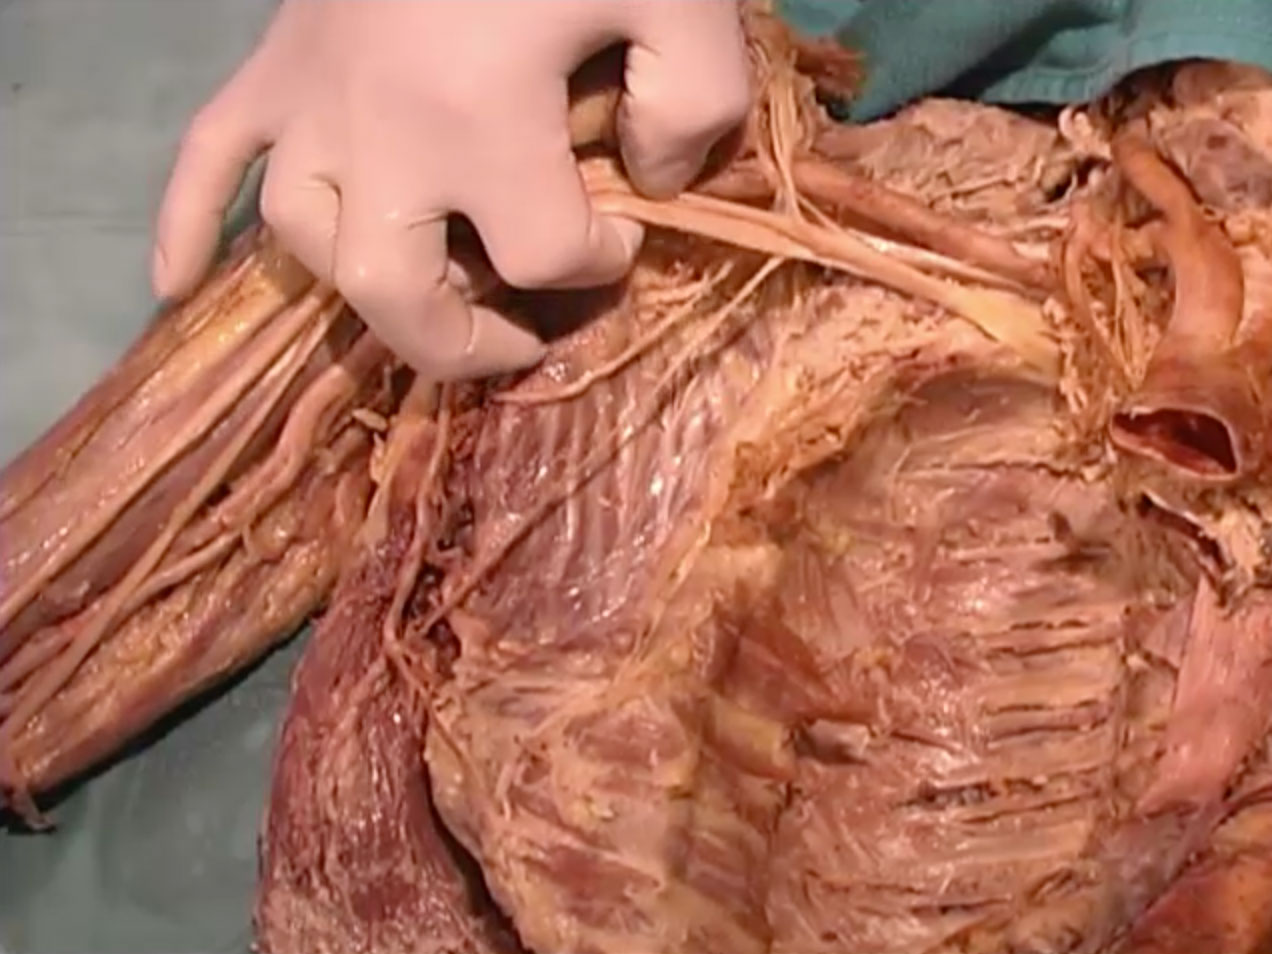 Picture from Dissection 17 Cutaneous Veins and Axilla video